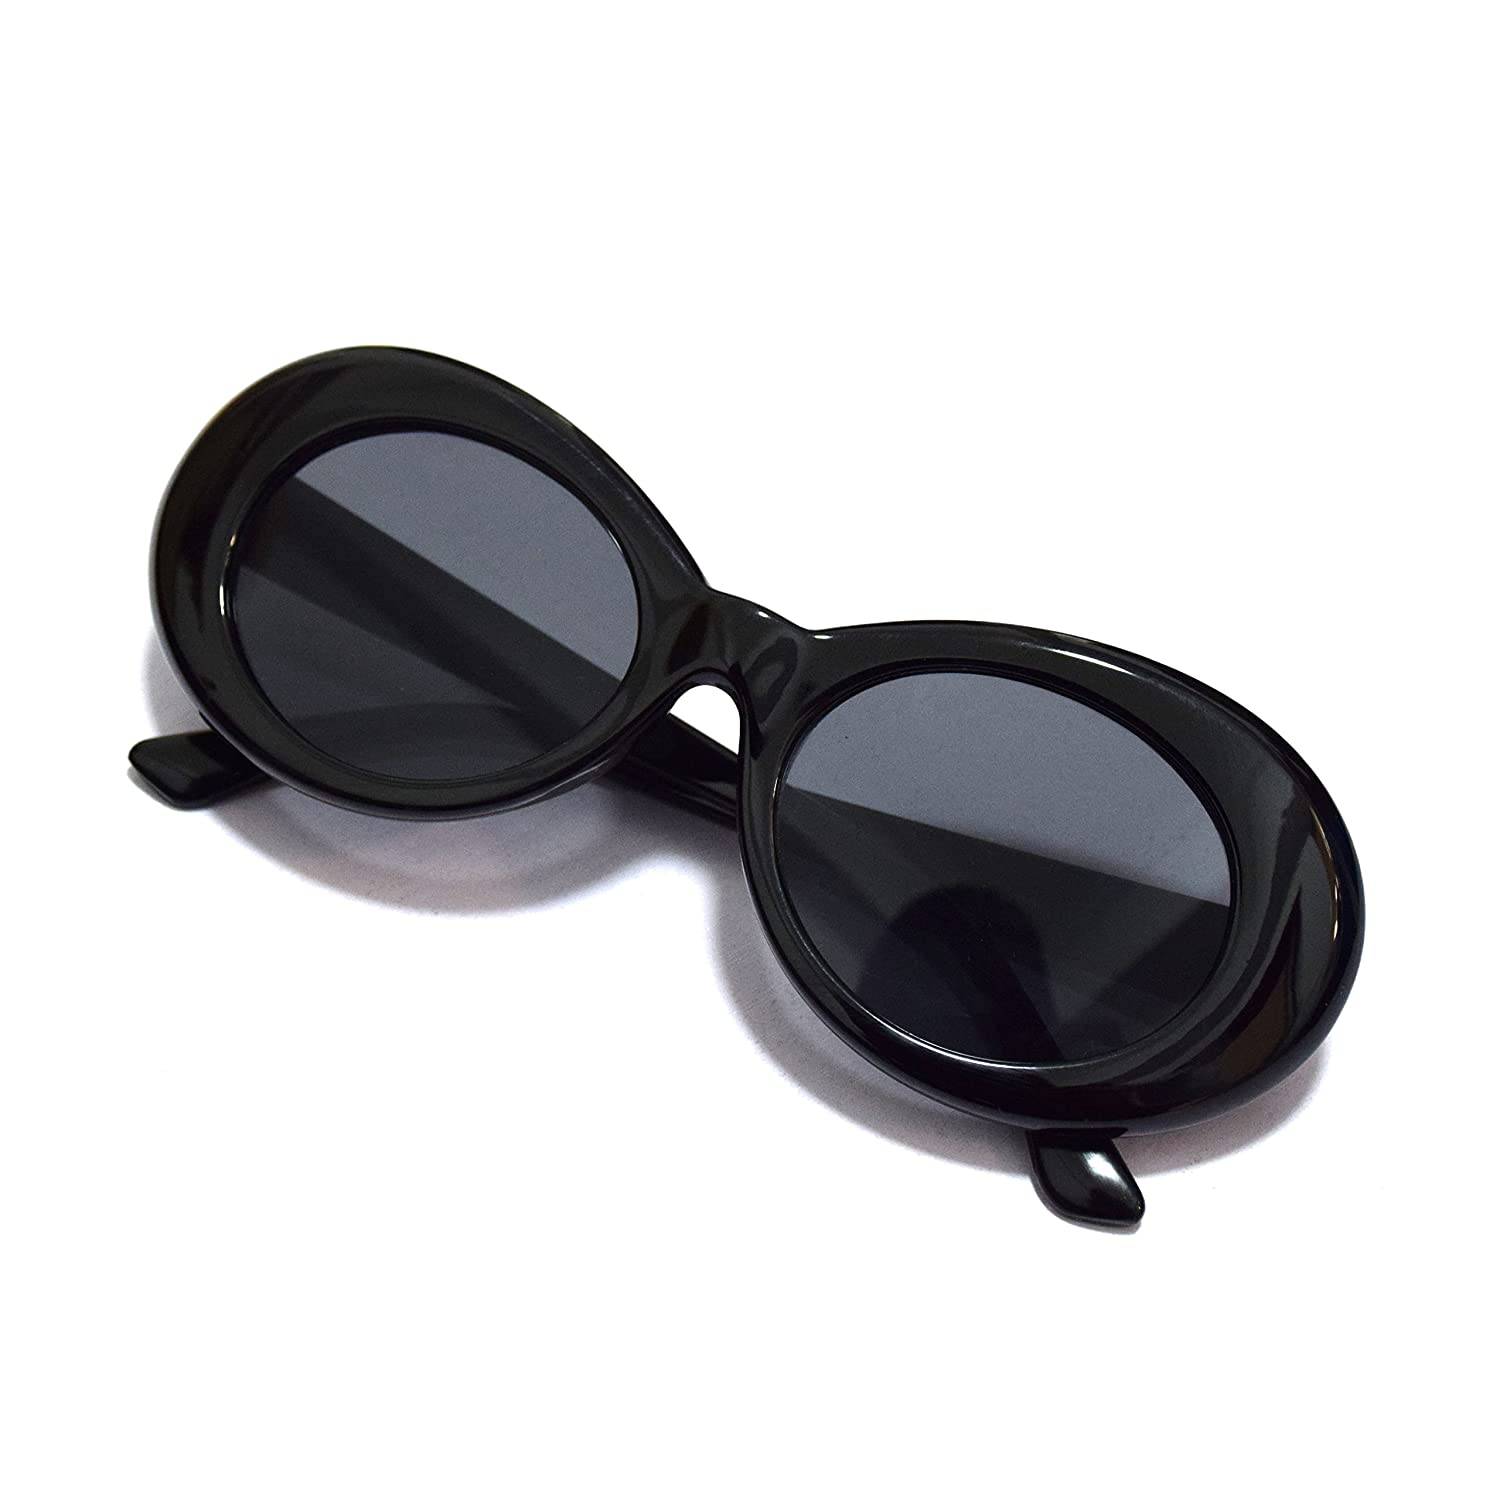 Amazon clout goggles retro round bold oval mod vintage thick juslink bold retro oval mod thick frame sunglasses round lens clout goggles jeuxipadfo Images